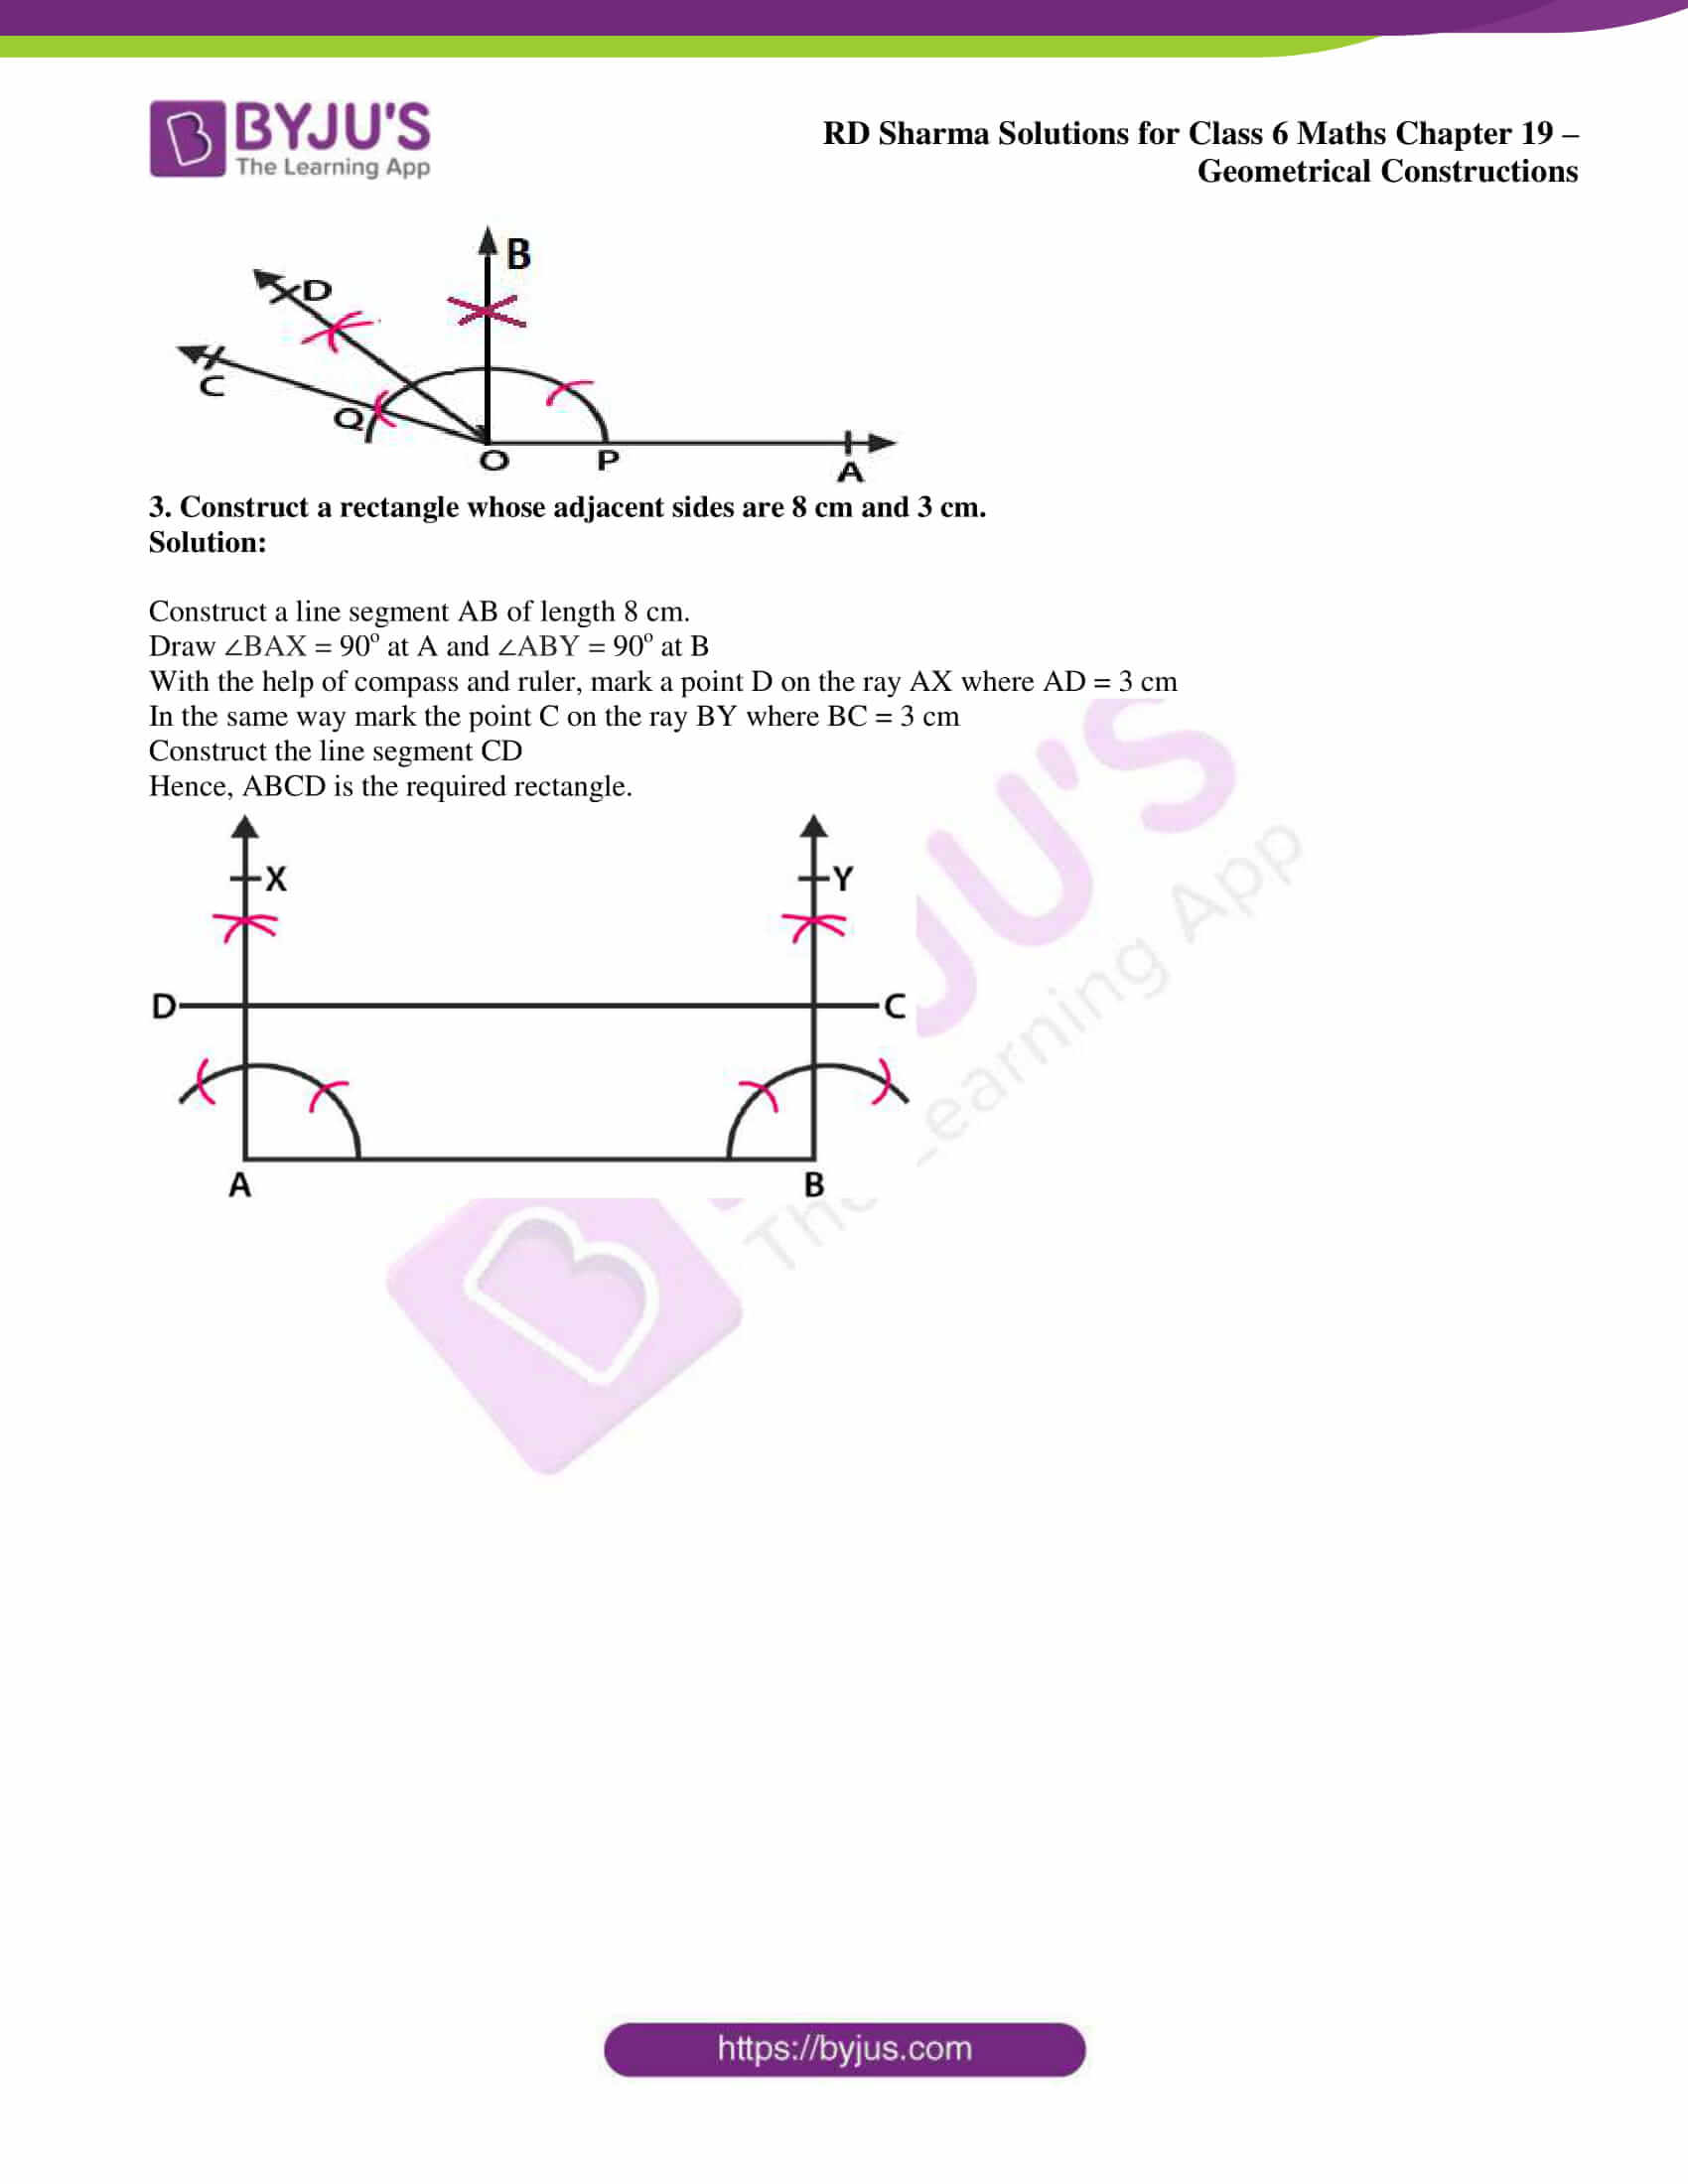 rd sharma solutions nov2020 class 6 maths chapter 19 exercise 6 4